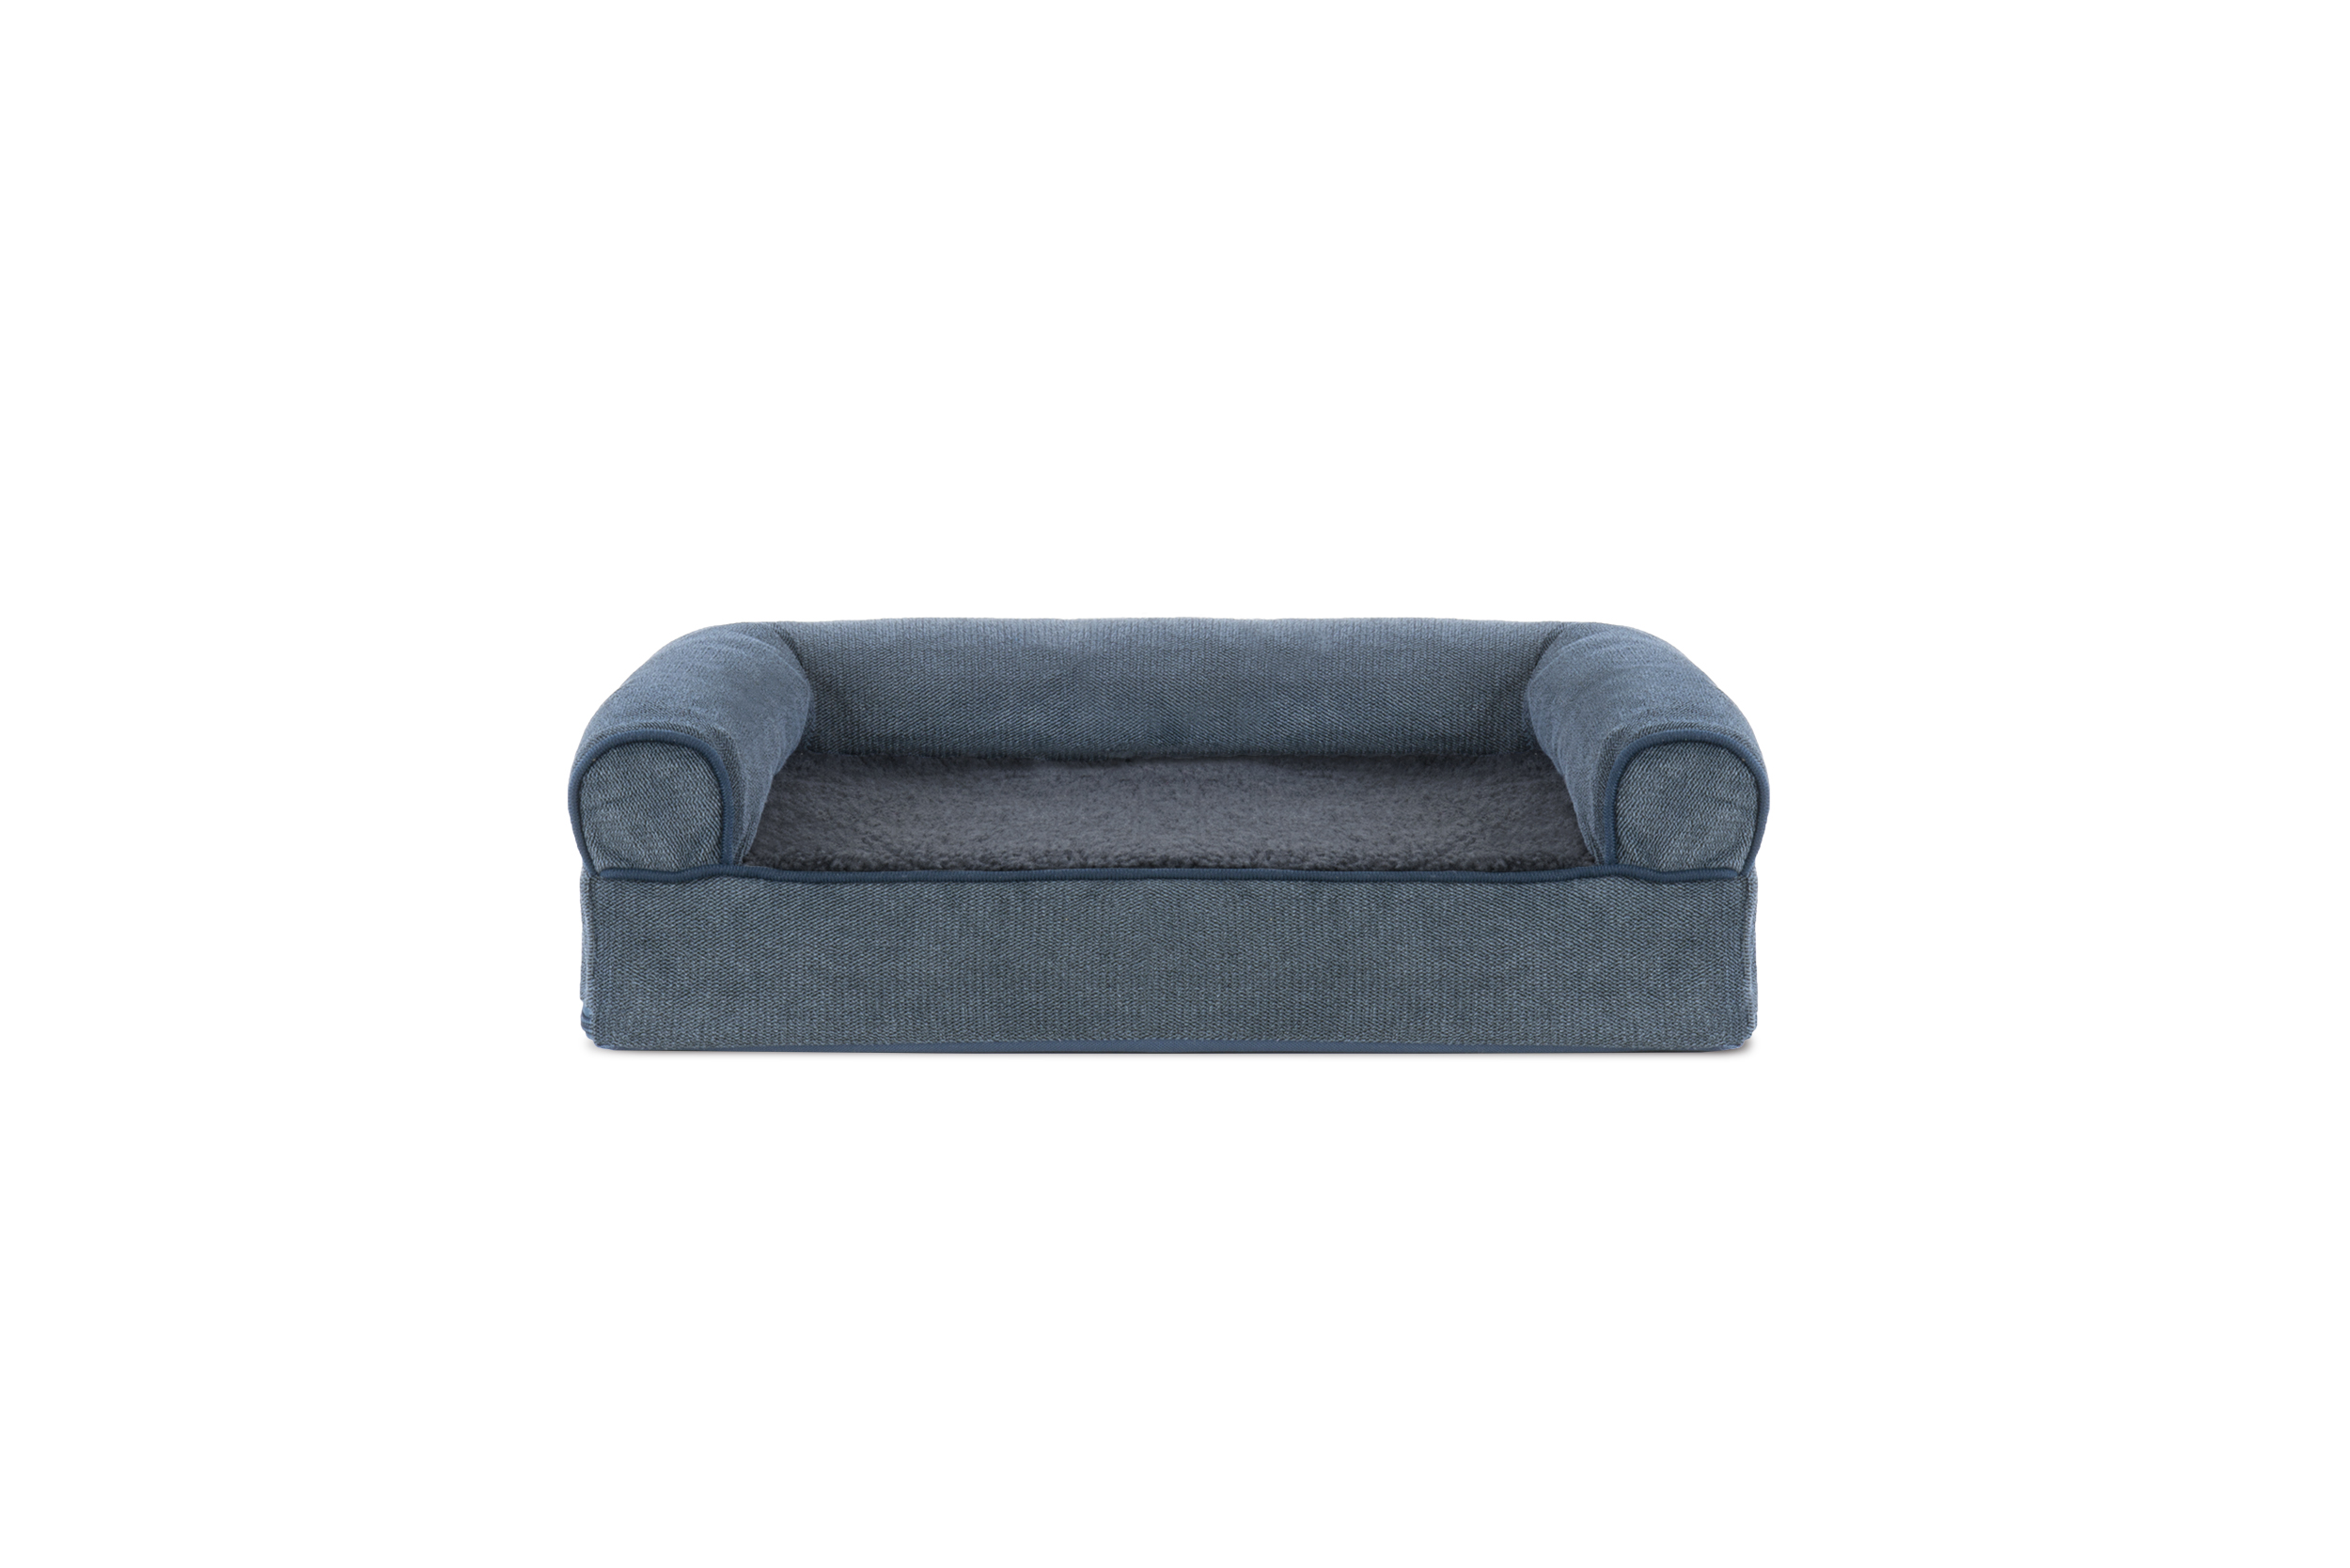 soft sofa dog bed tylosand 3 seater cover faux fleece and chenille woven orthopedic pet